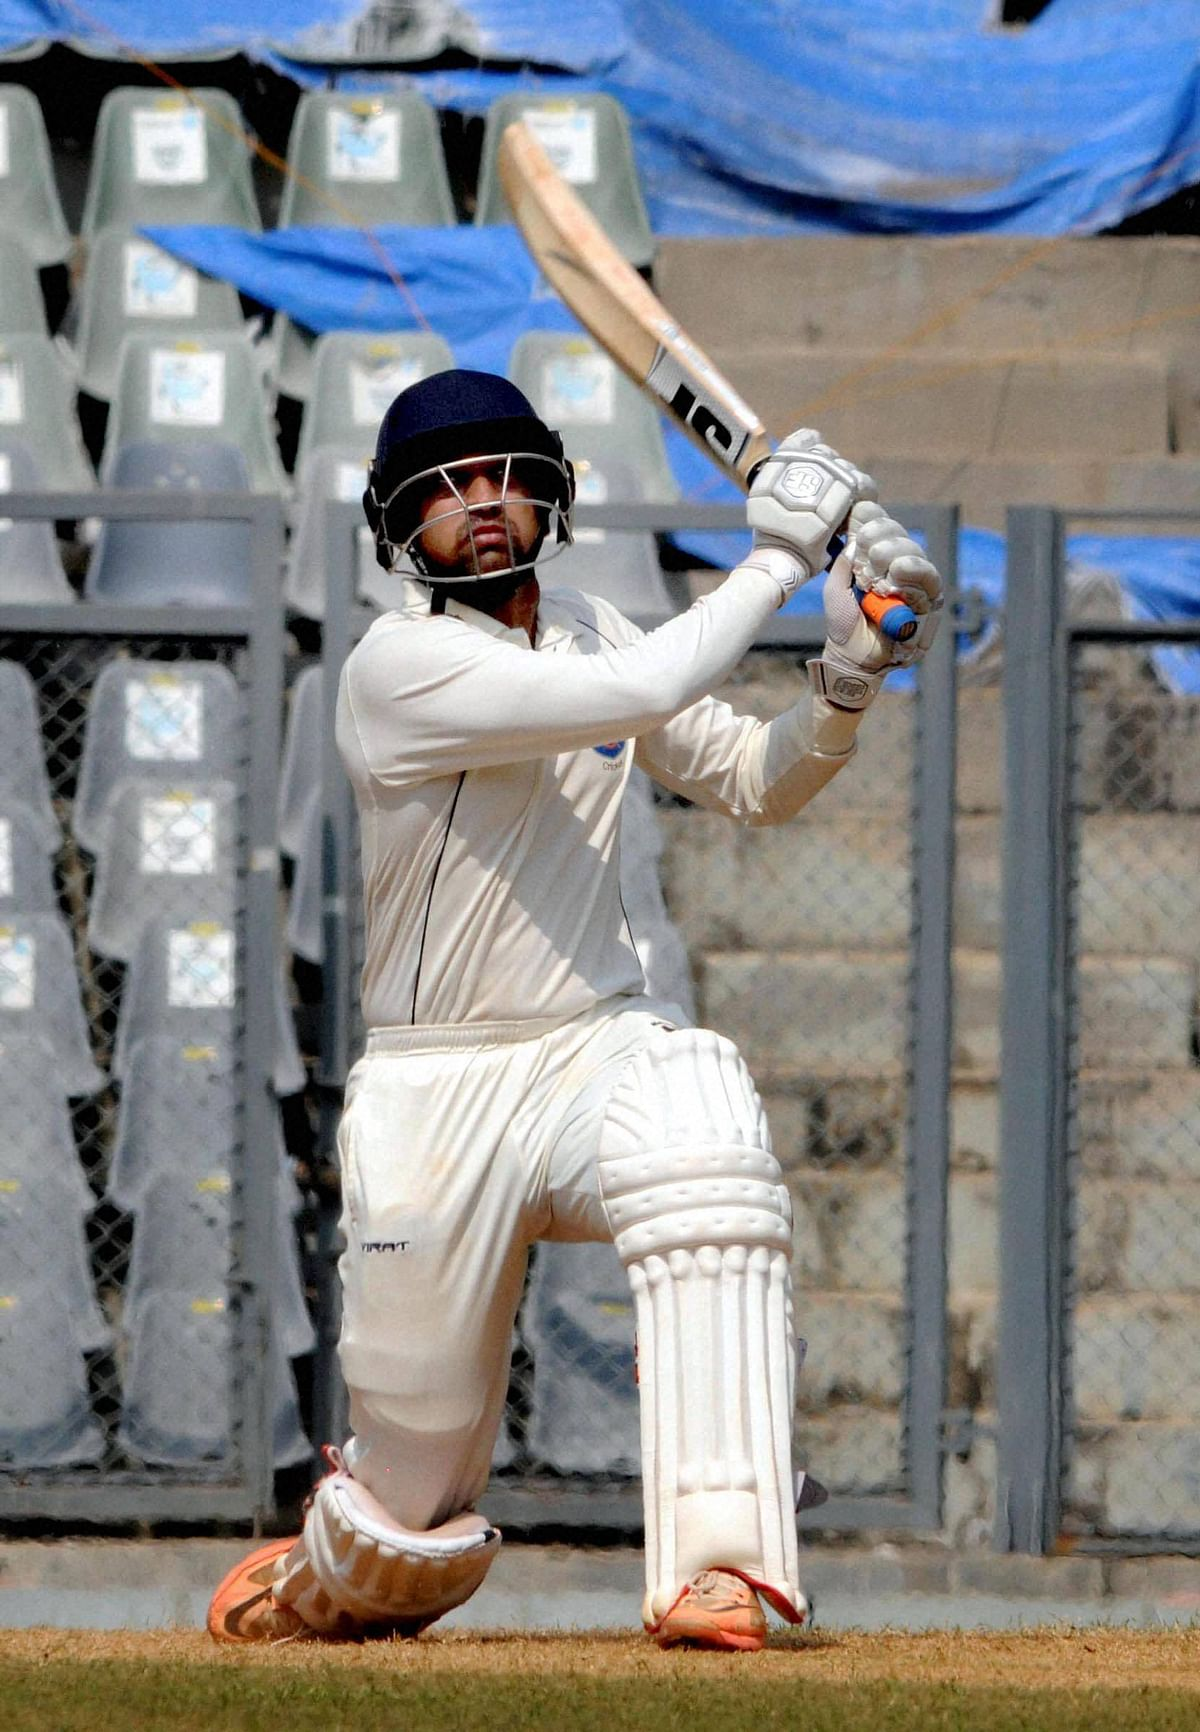 Swapnil Gugale of Maharashtra plays a shot against Delhi during their Ranji Trophy match at Wankhede Stadium in Mumbai on Friday. (Photo: PTI)